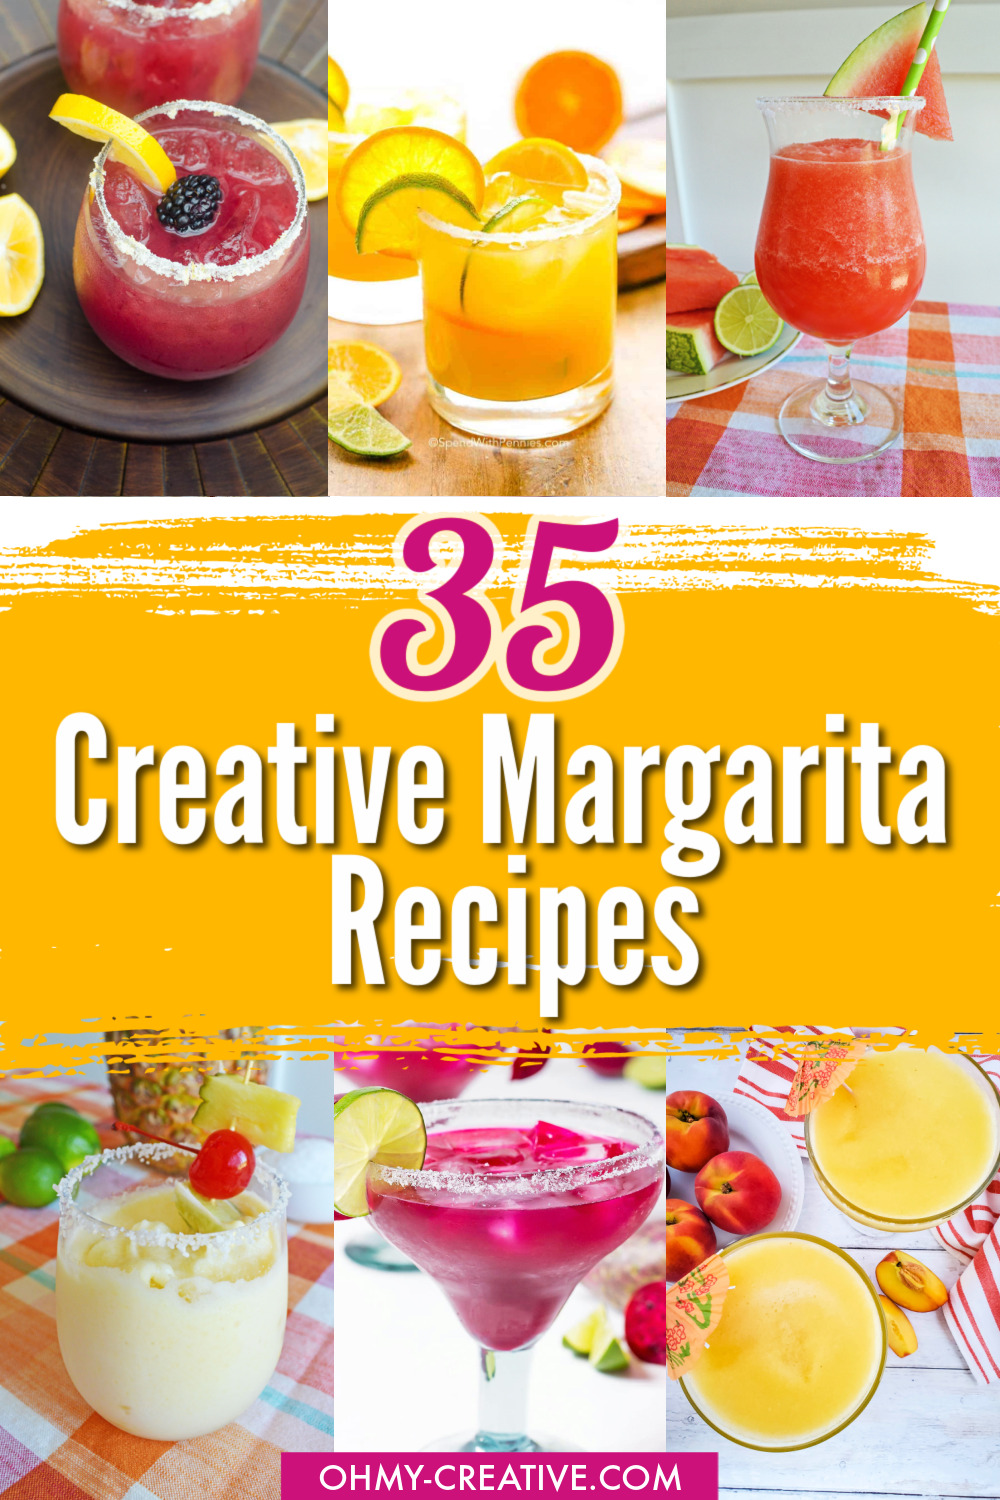 """Six creative margaritas made with different fruits and flavors. Along with type """"35 Creative Margarita Recipes."""""""